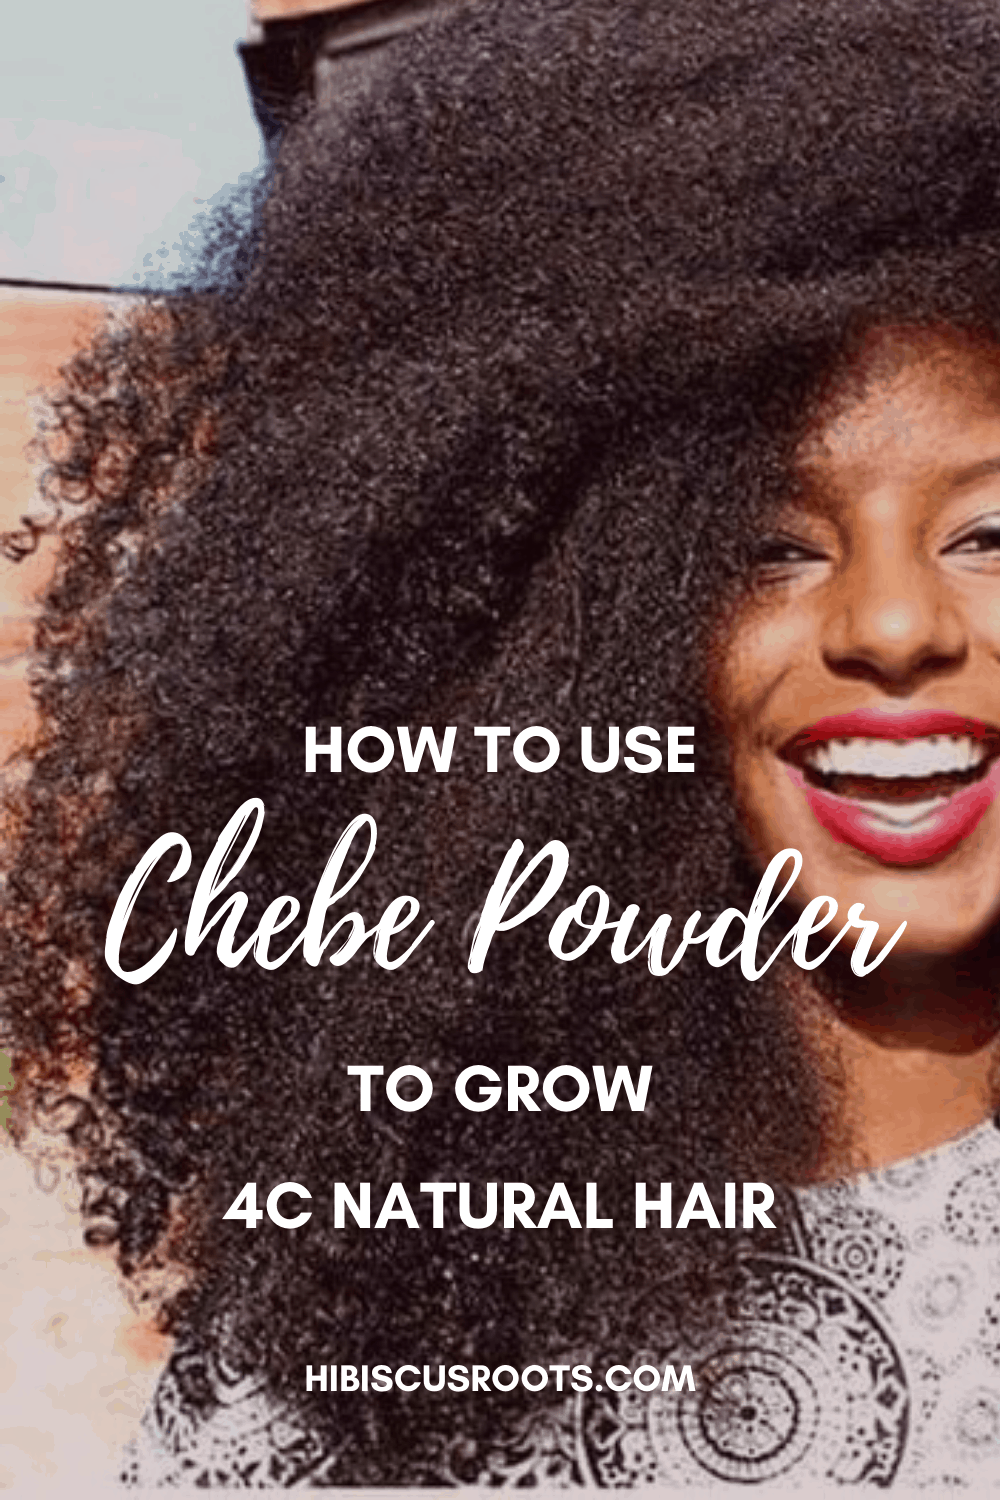 How to Use Chebe Powder to Grow 4C Hair - Remarkably!